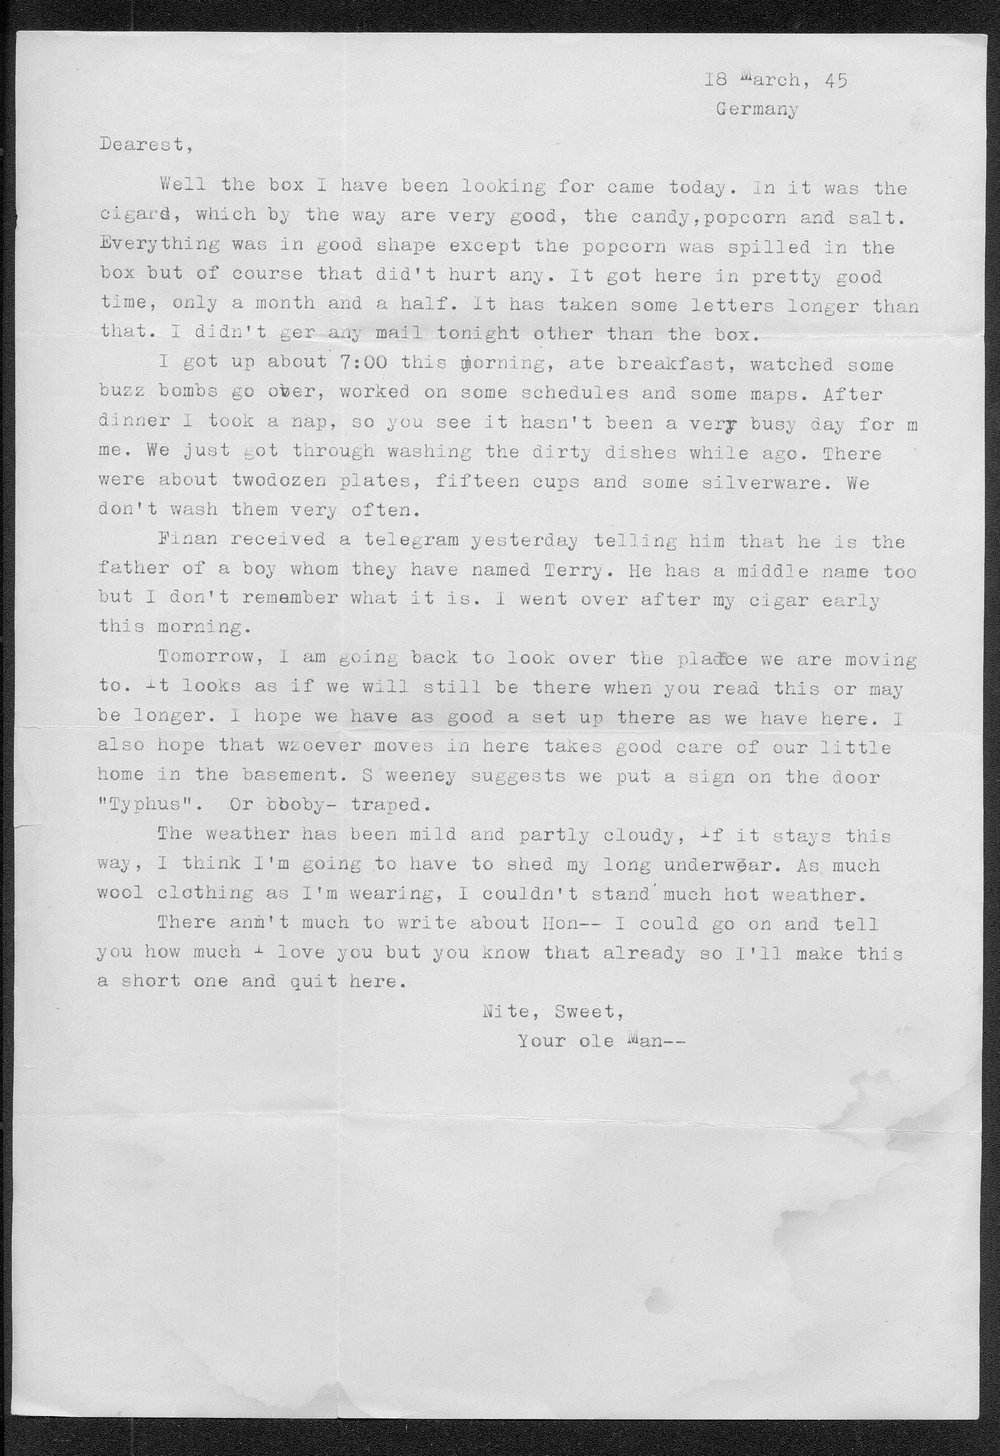 Letters from Hilton Parris Mize to his wife Irene Rosenberger Mize - 5